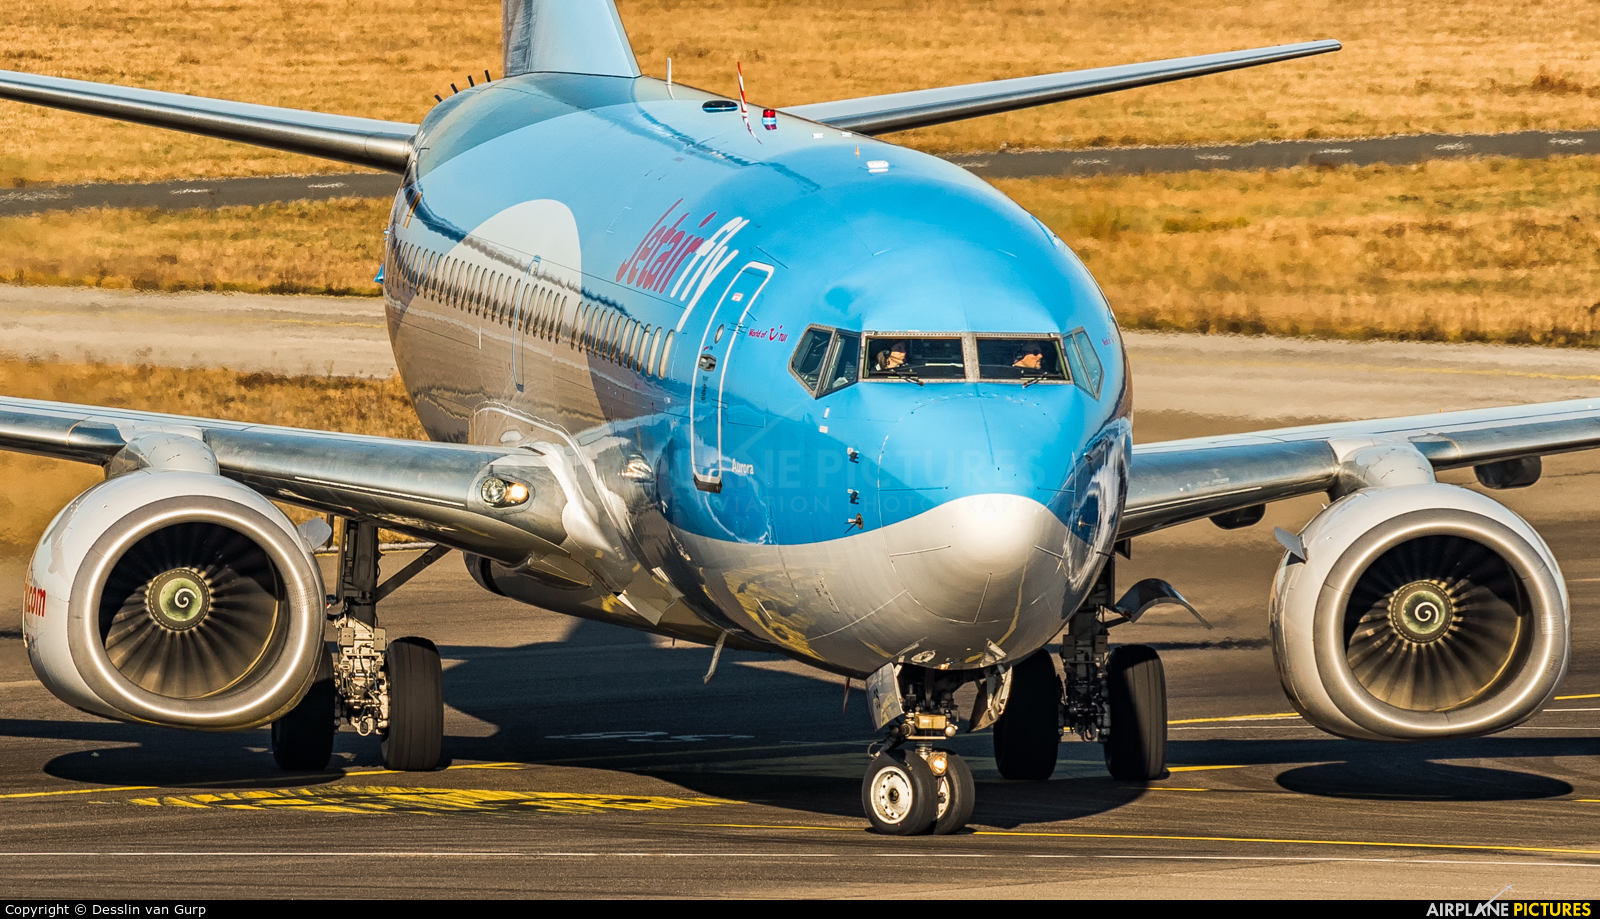 Jetairfly (TUI Airlines Belgium) OO-JOS aircraft at Eindhoven